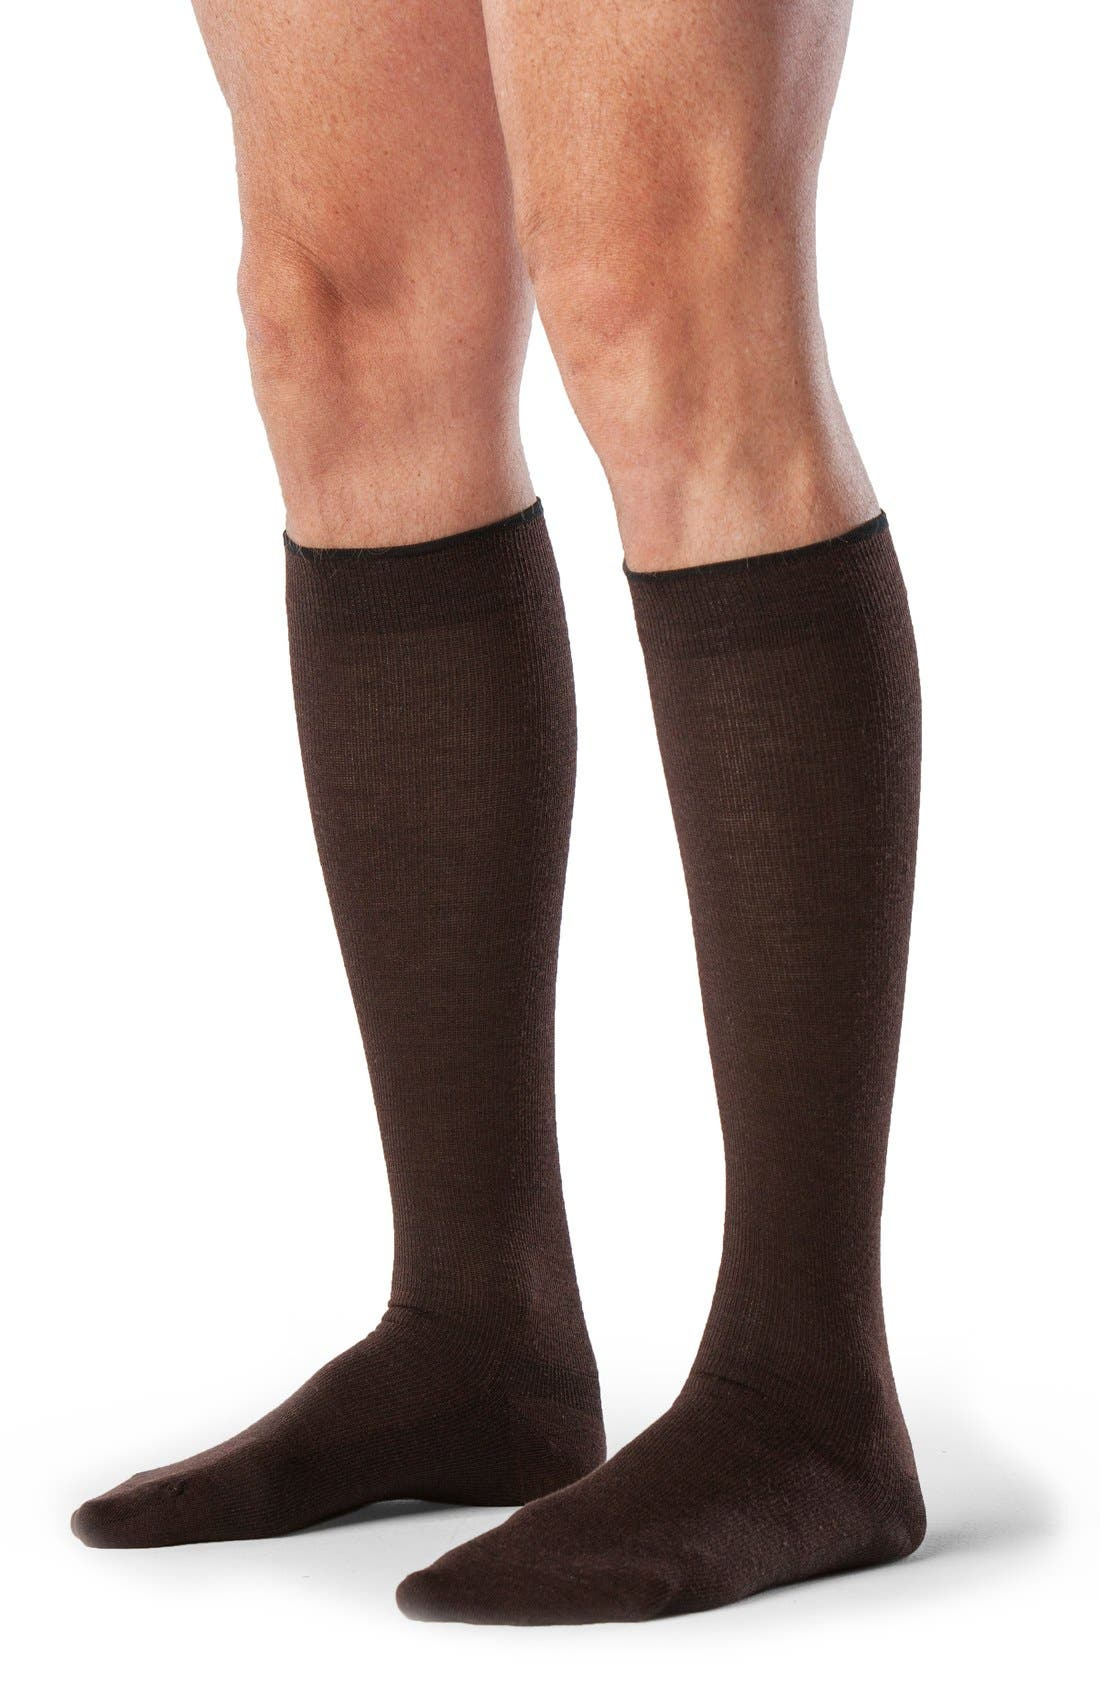 INSIGNIA BY SIGVARIS,                             'Venturist' Over the Calf Socks,                             Alternate thumbnail 2, color,                             BROWN